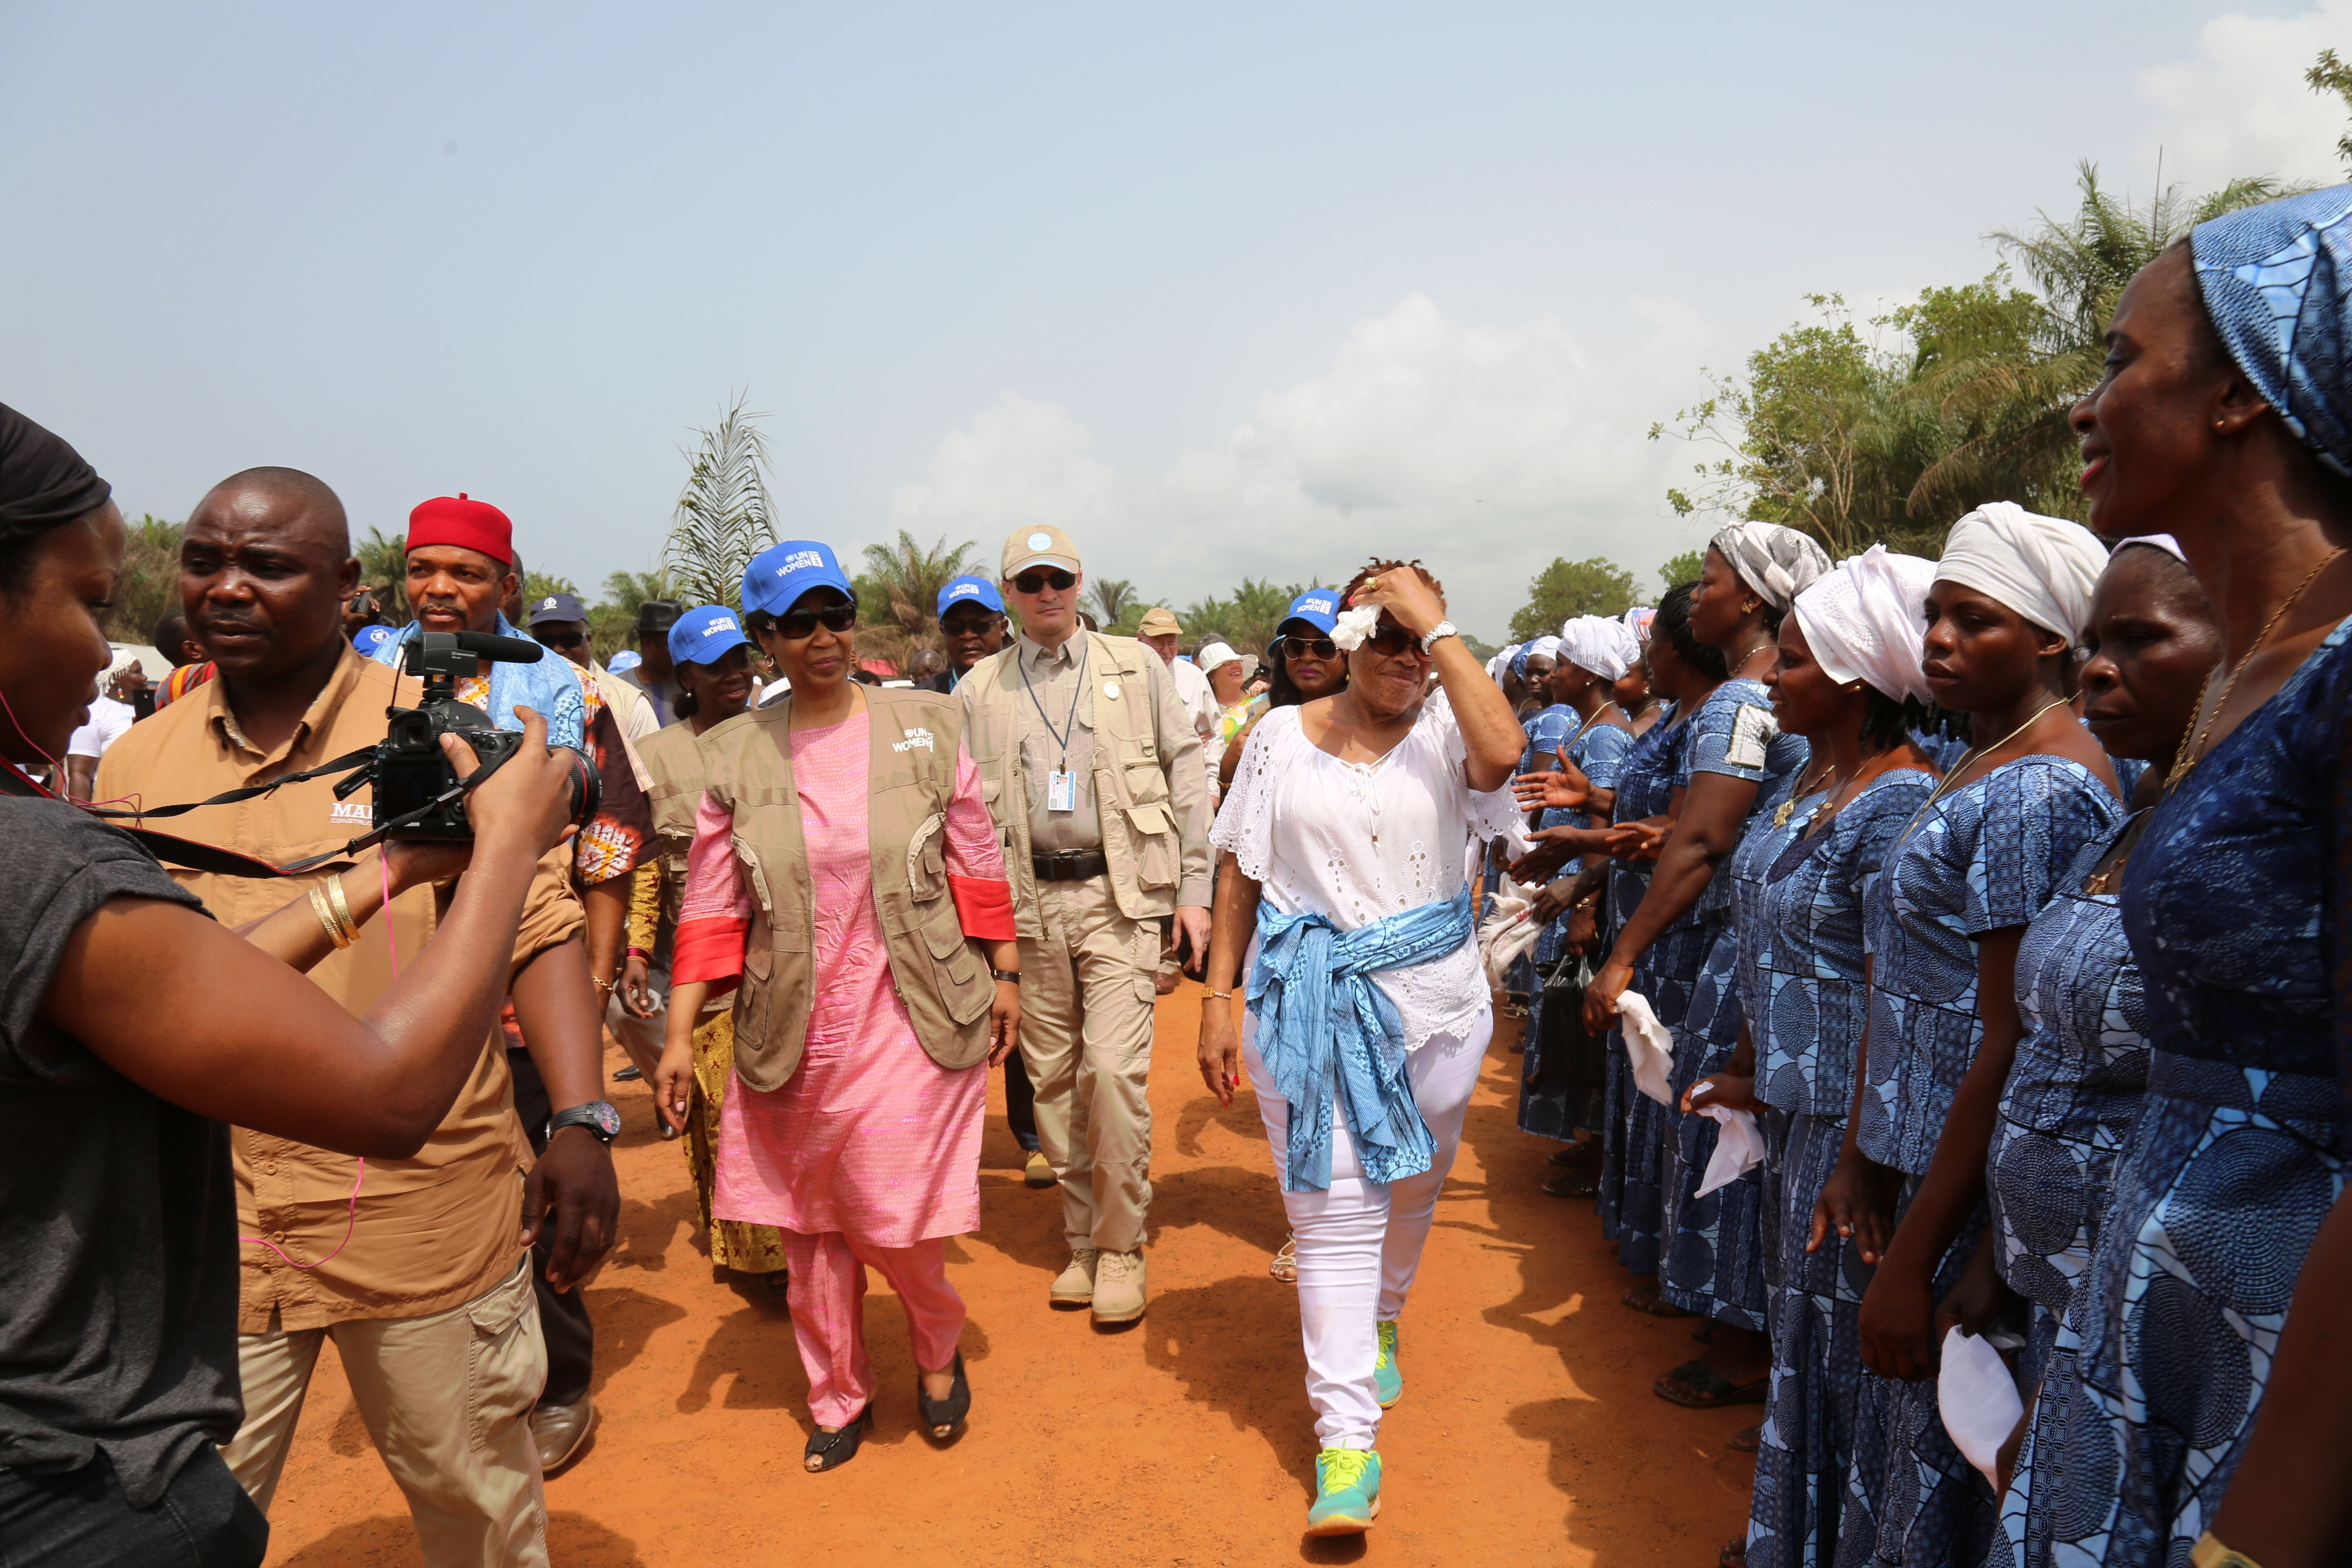 UN Women Executive Director and Canadian Prime Minister to Visit Liberia